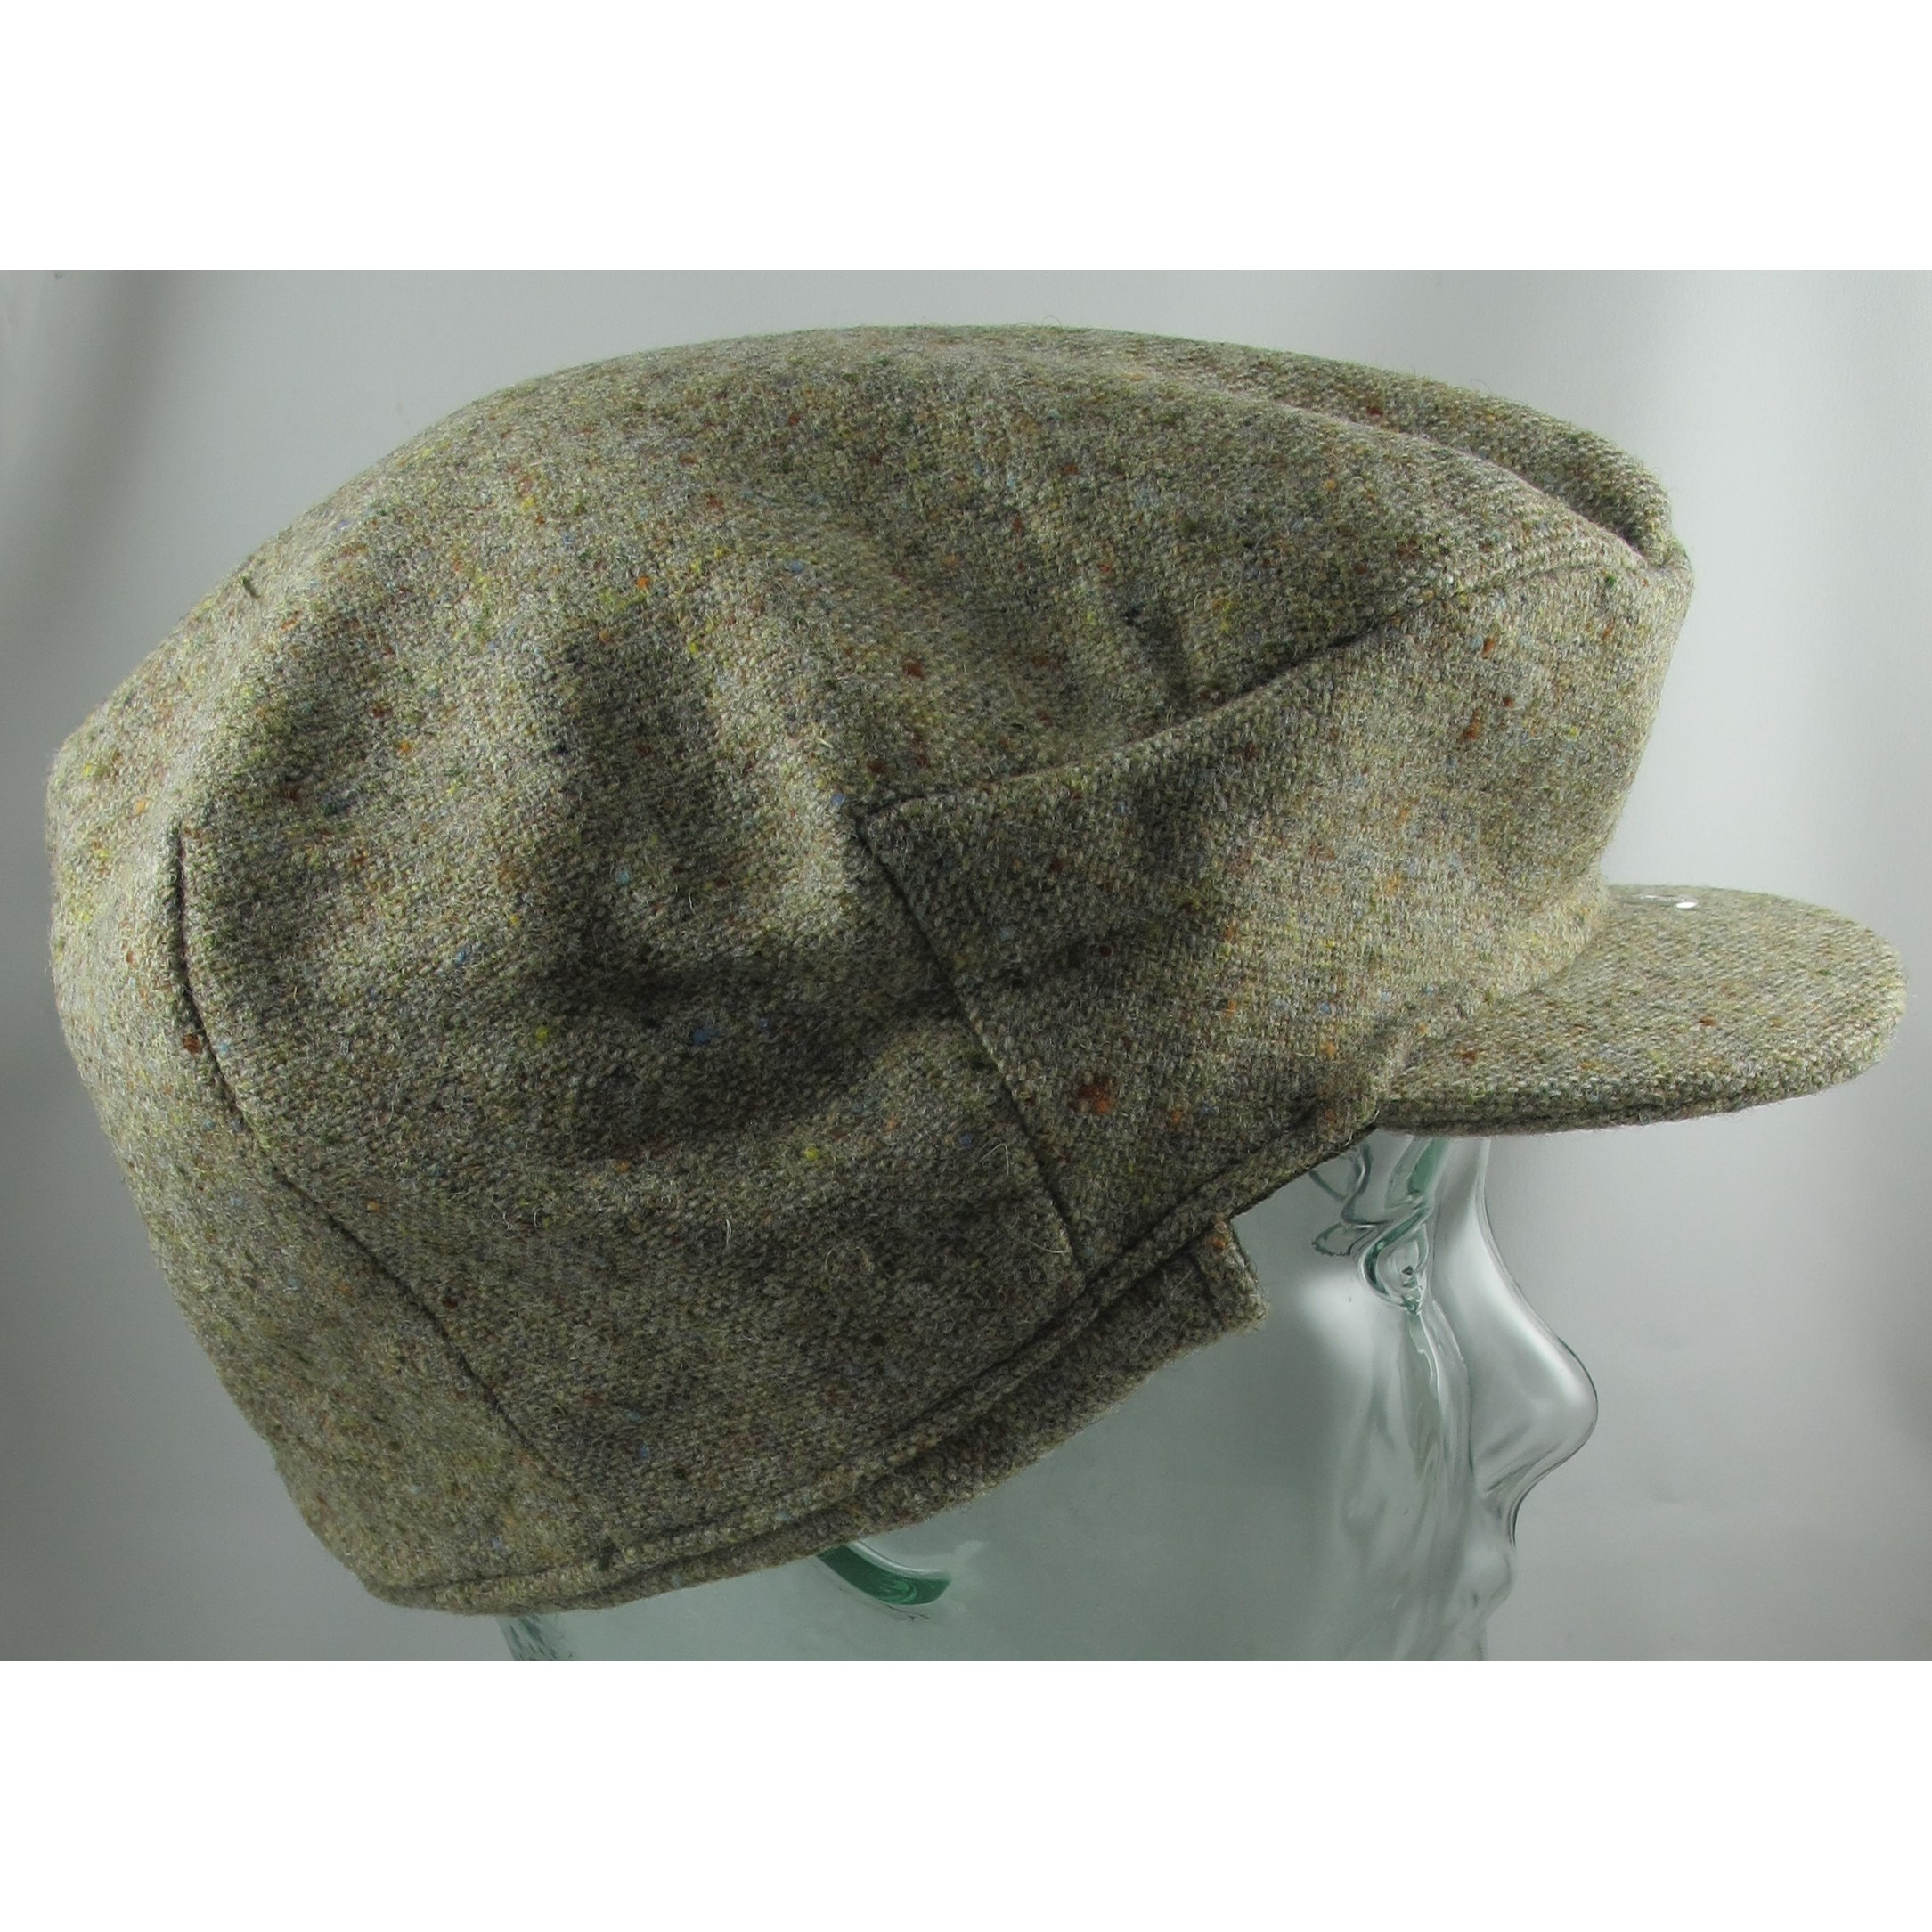 Cream Speckled Vintage Cap with Flaps